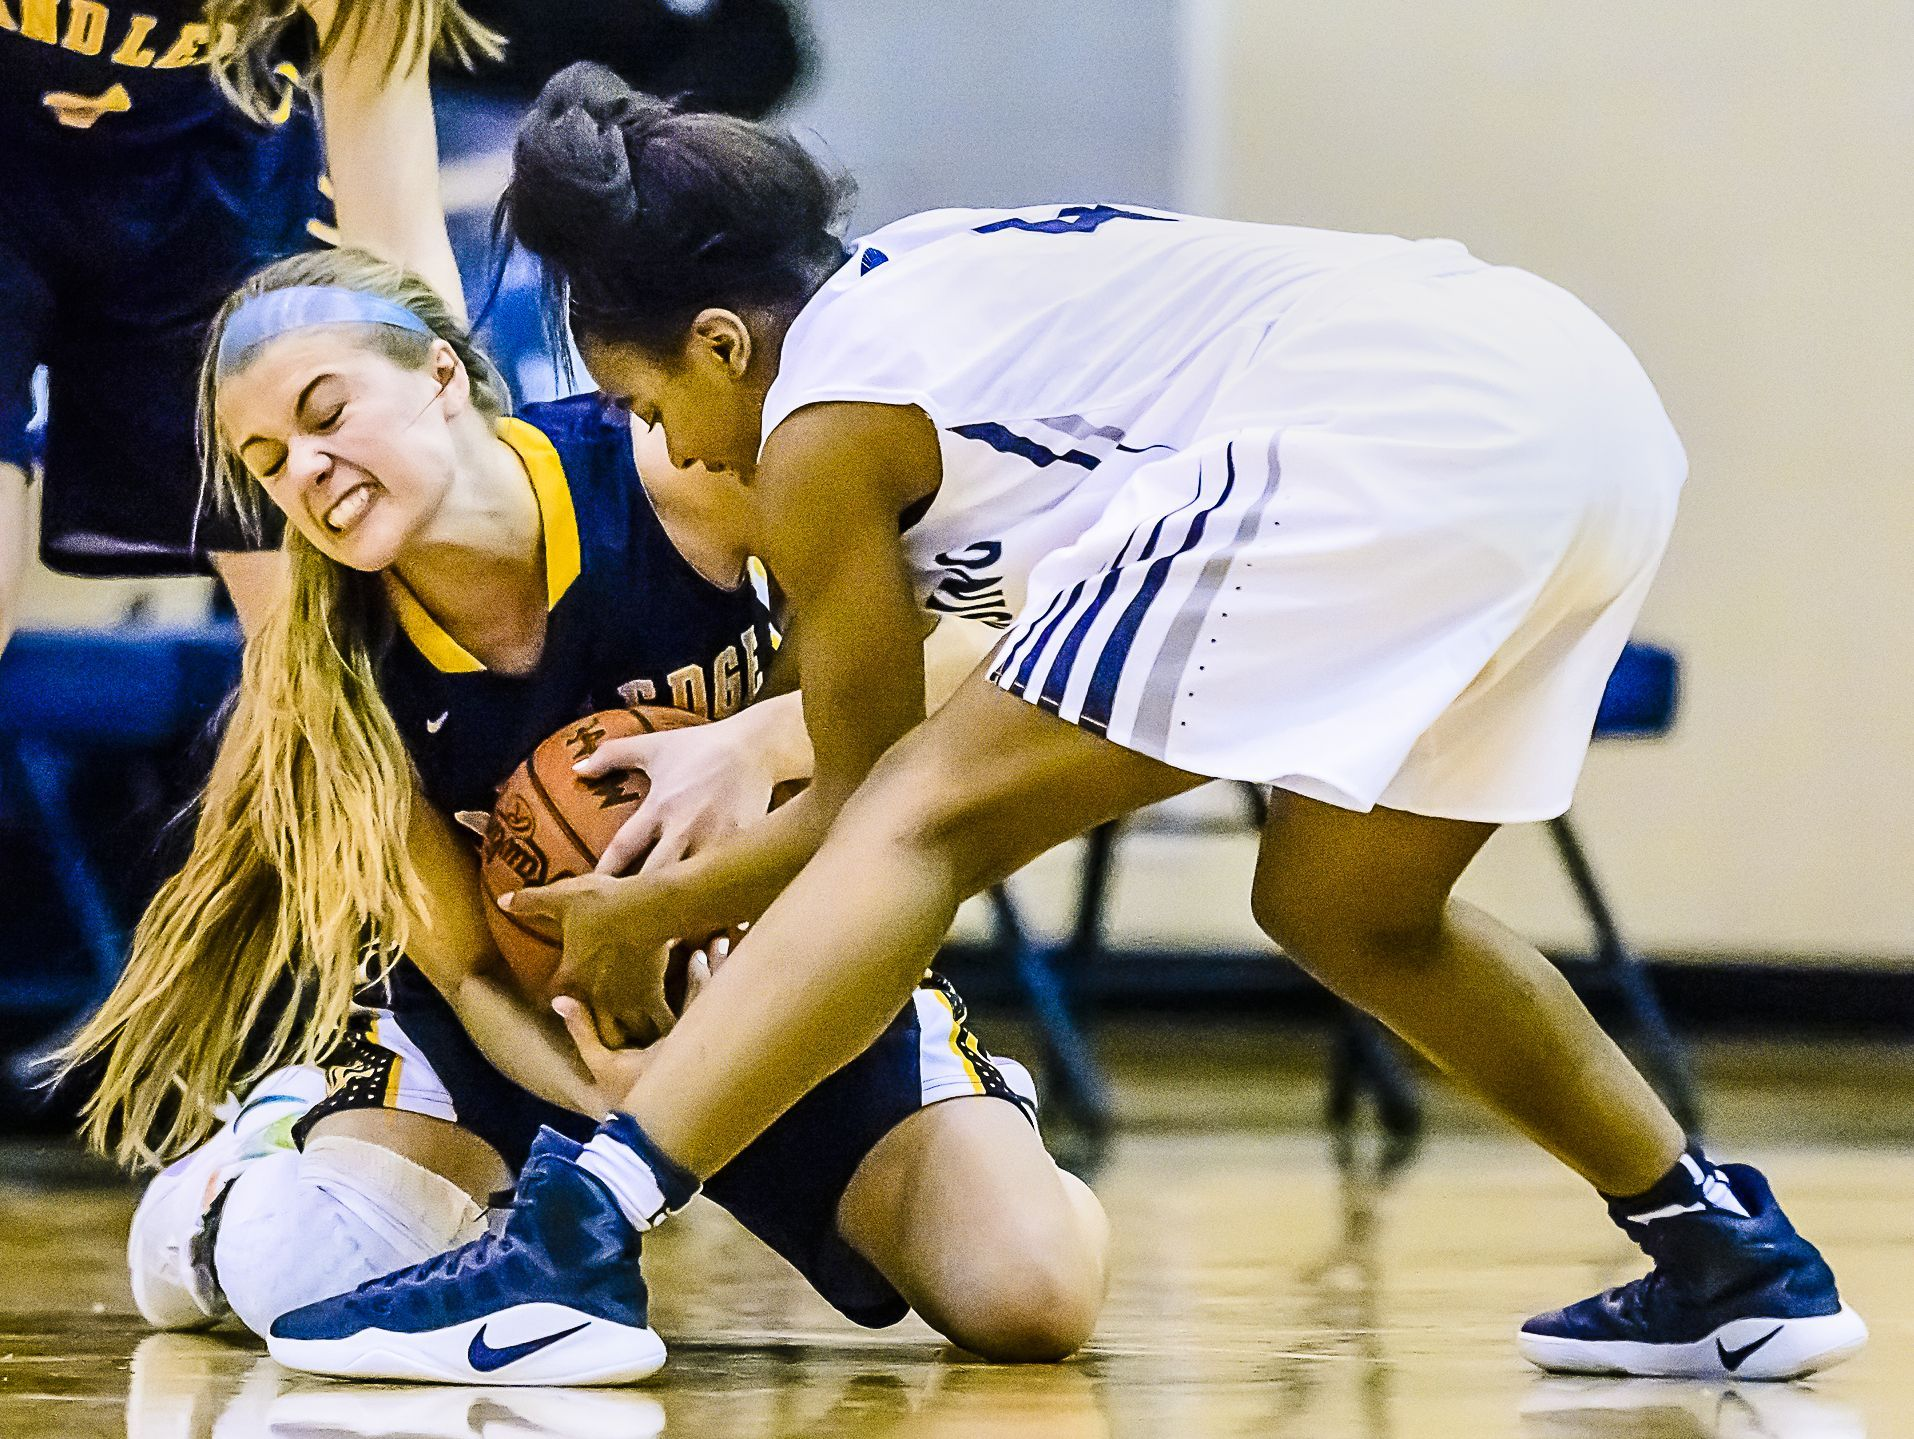 Brooke Rambo ,left, of Grand Ledge and Sanaya Gregory of East Lansing fight for a loose ball during their district semifinal game Wednesday March 1, 2017 at East Lansing High School. KEVIN W. FOWLER PHOTO